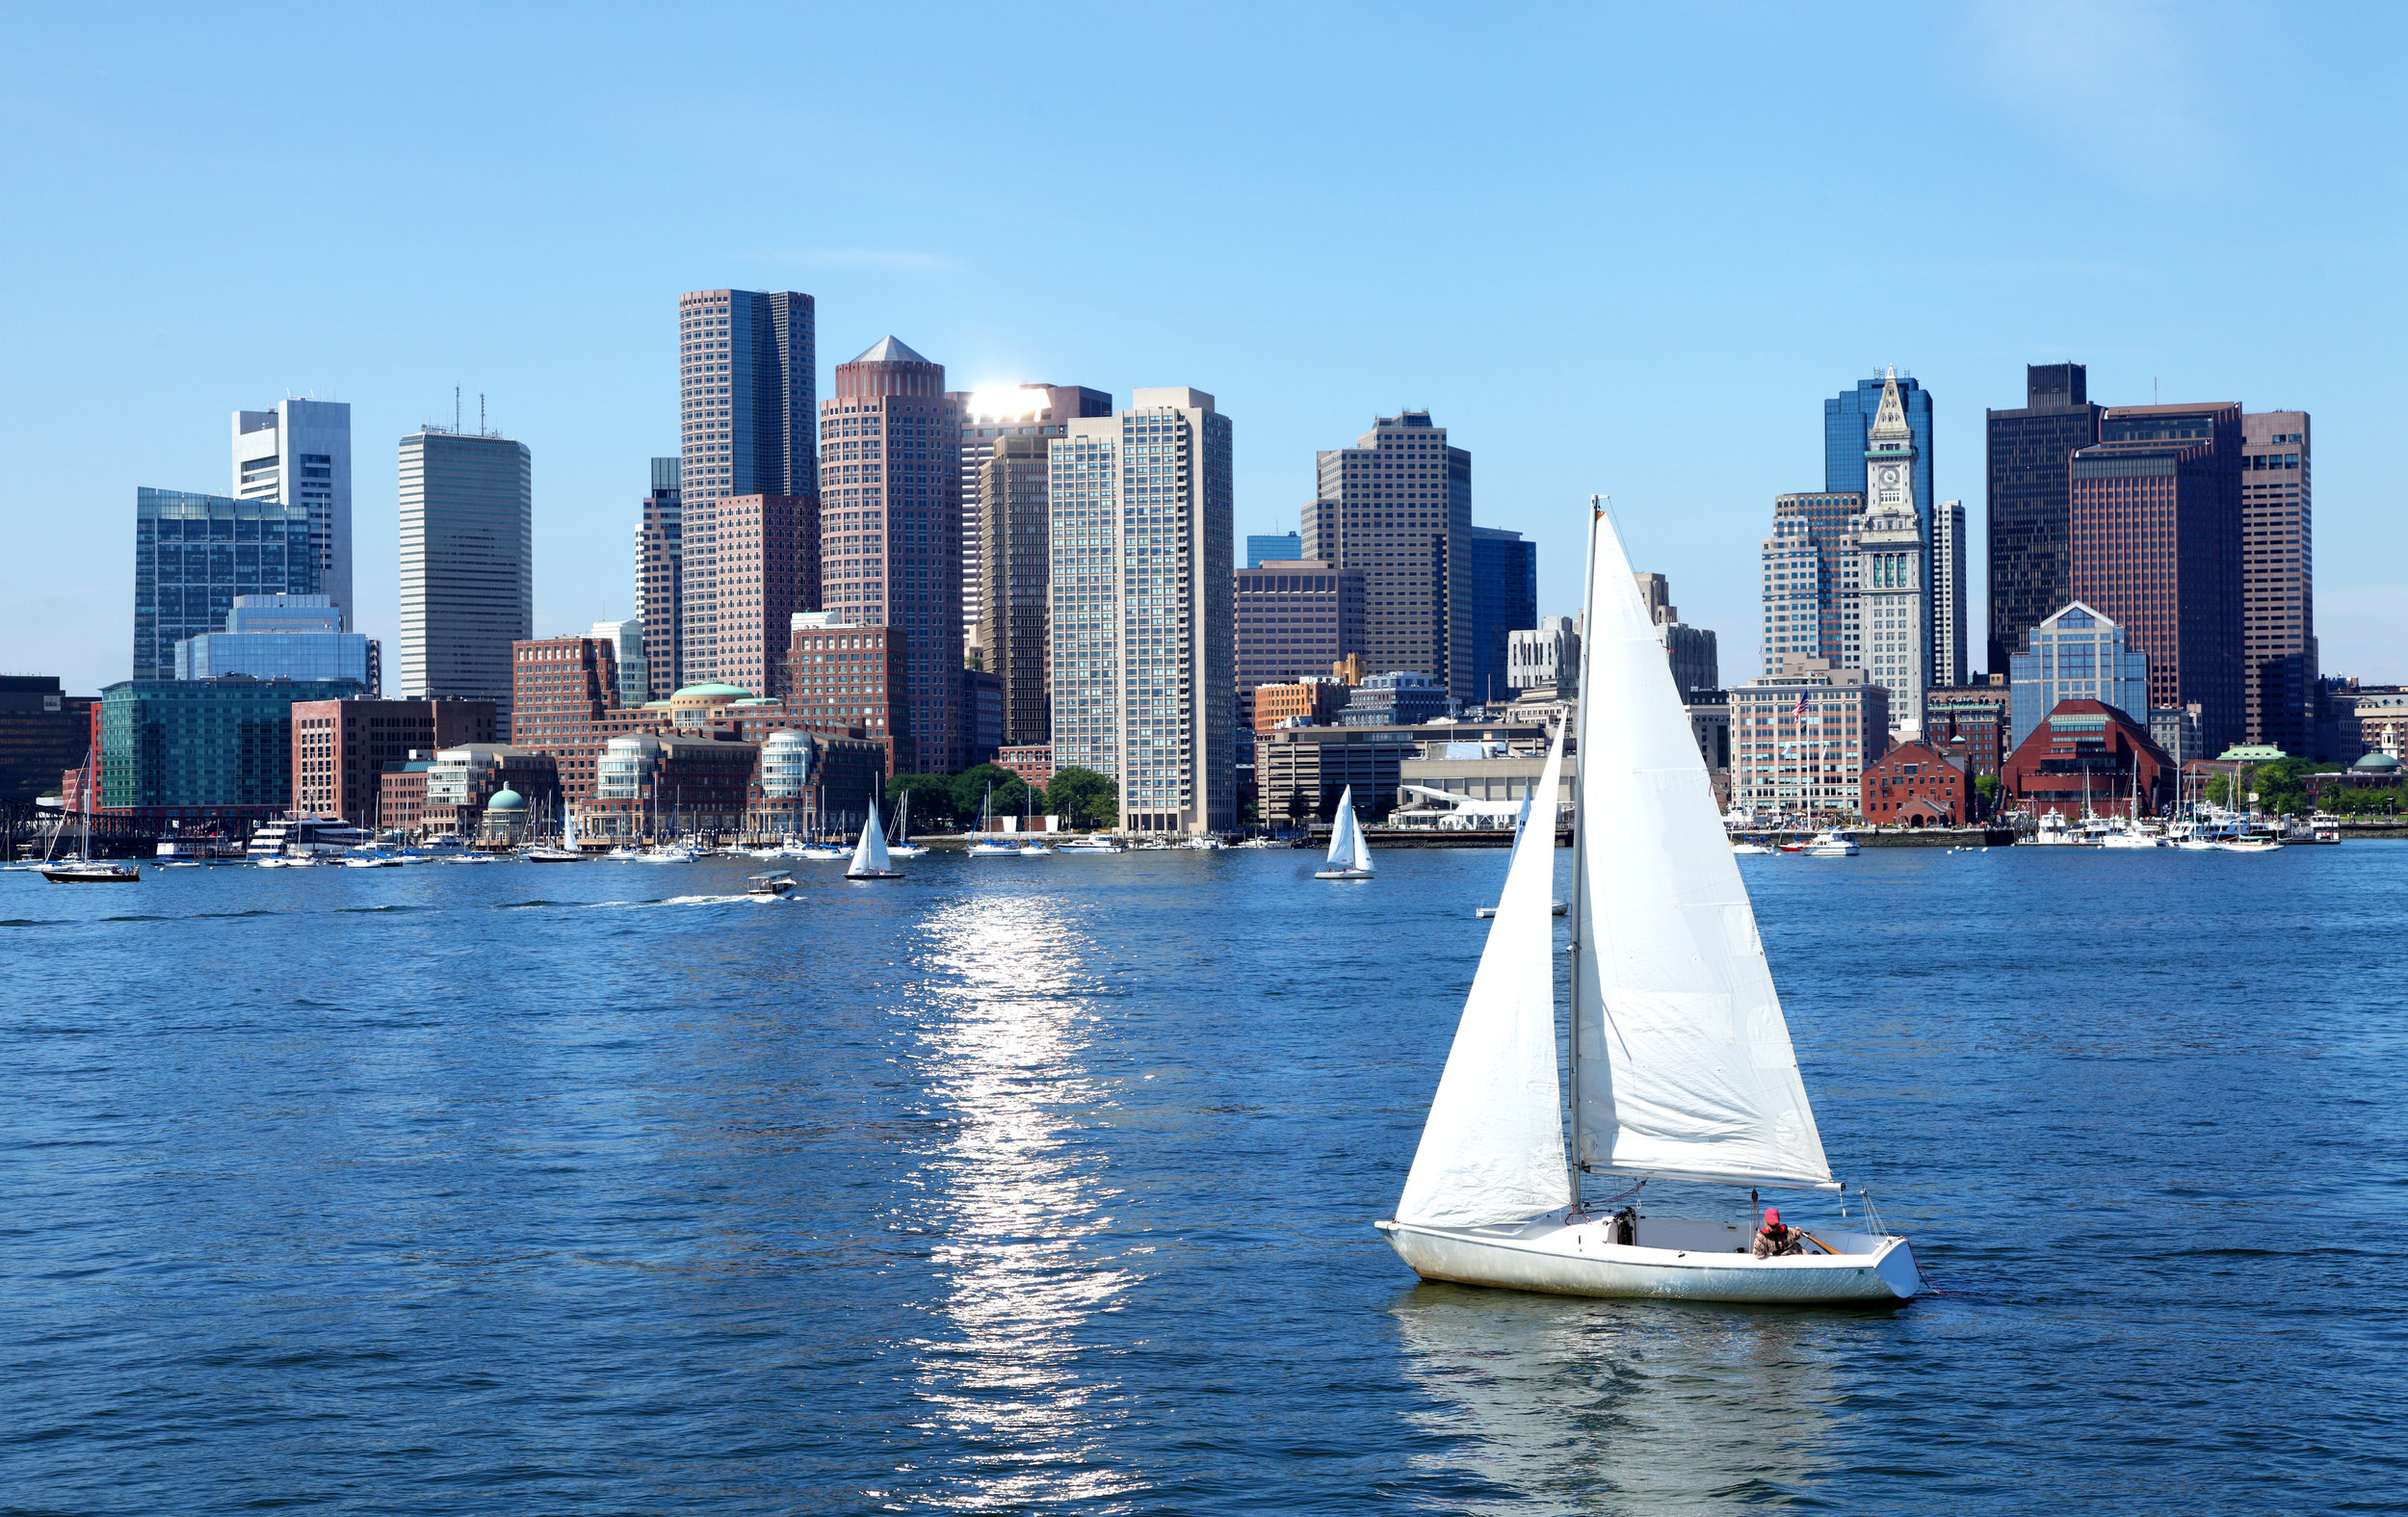 Boston Harbor - Working Harbor